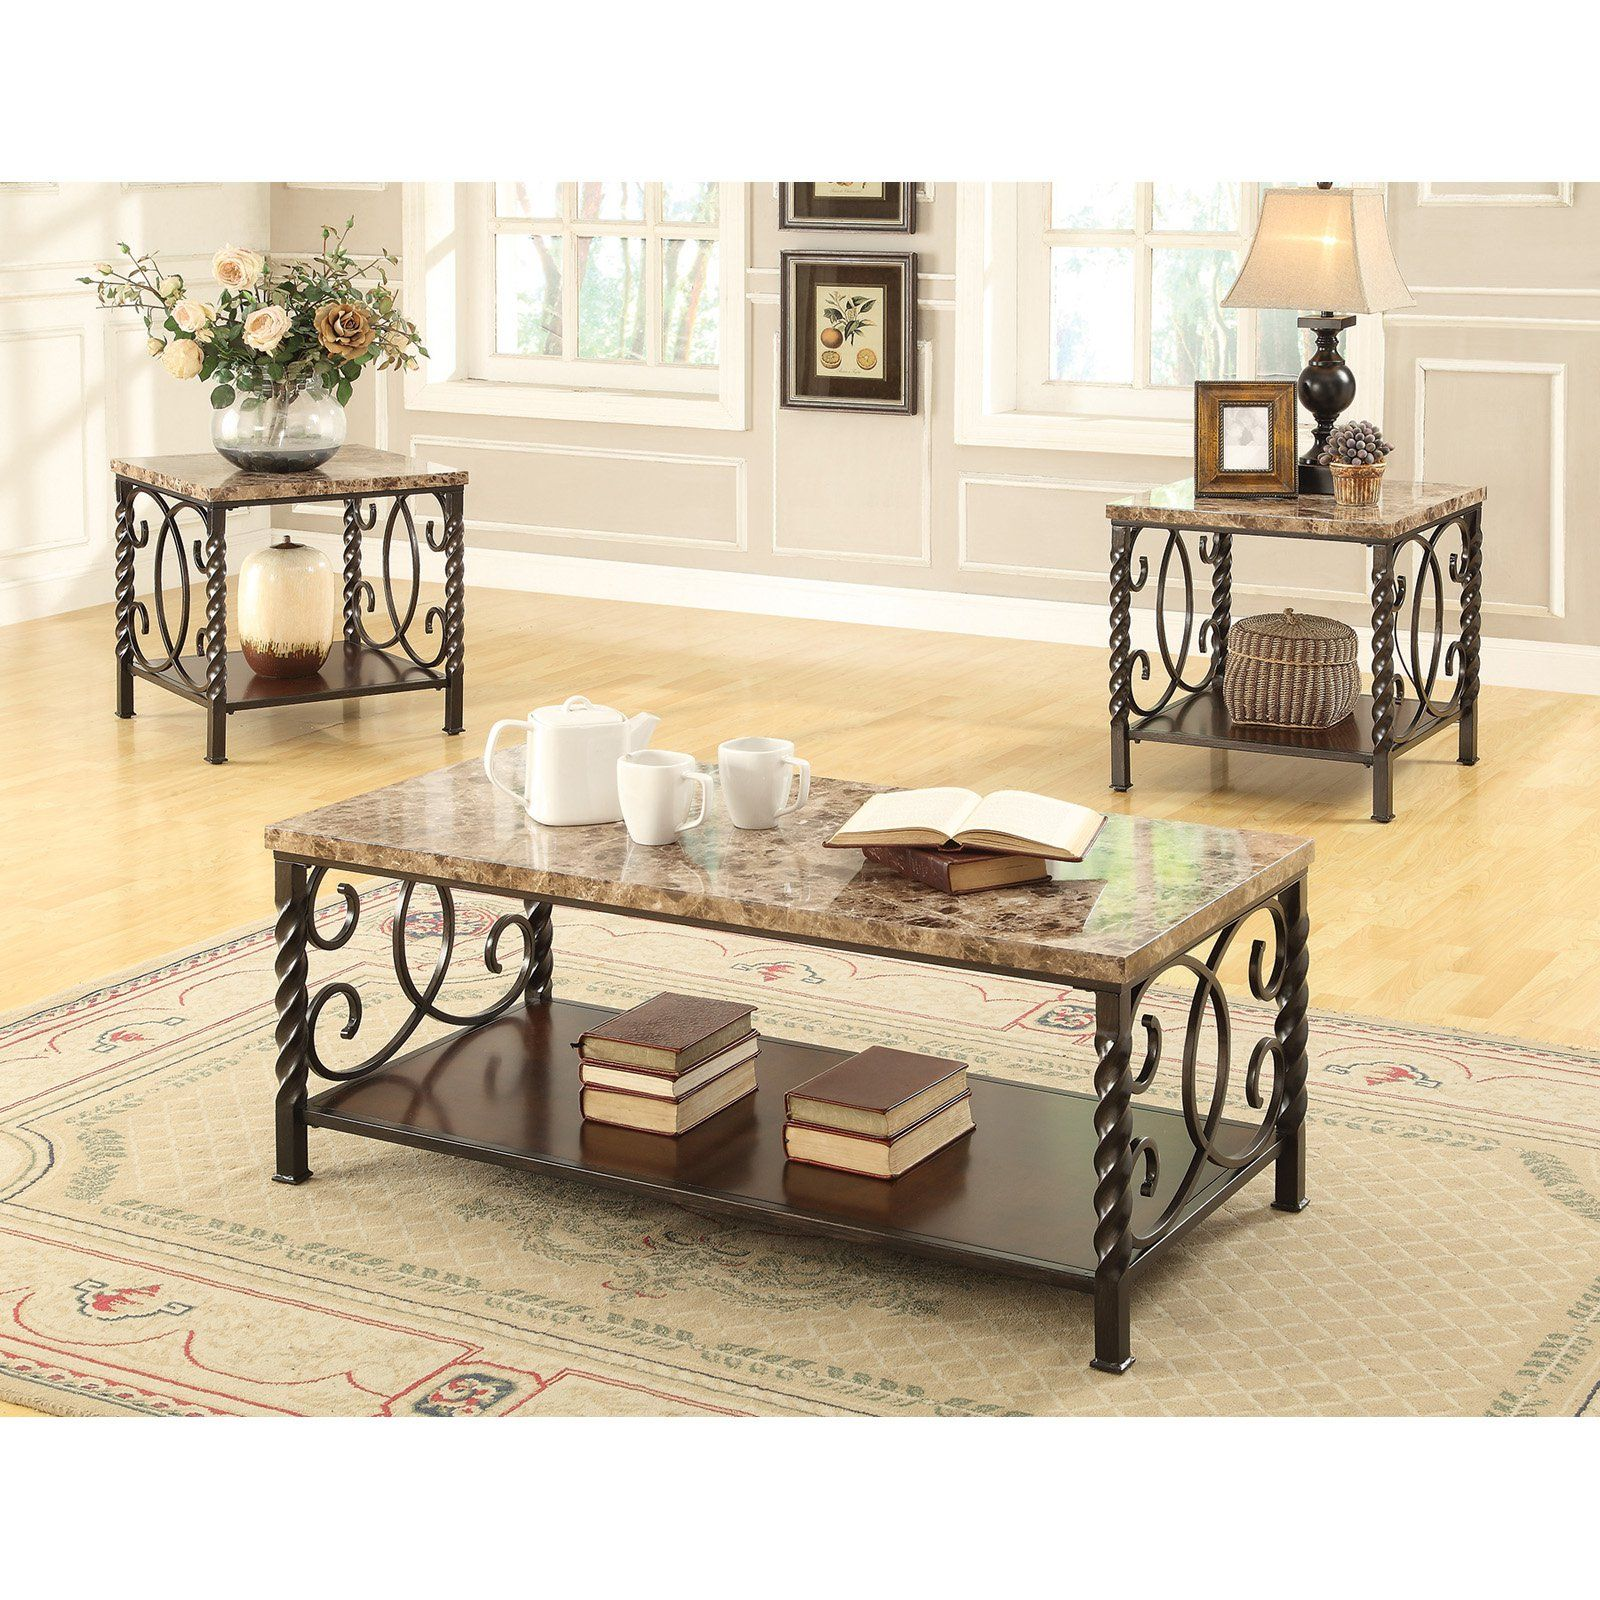 Coaster Furniture 3 Piece Marble Top Coffee Table Set Dark Brown